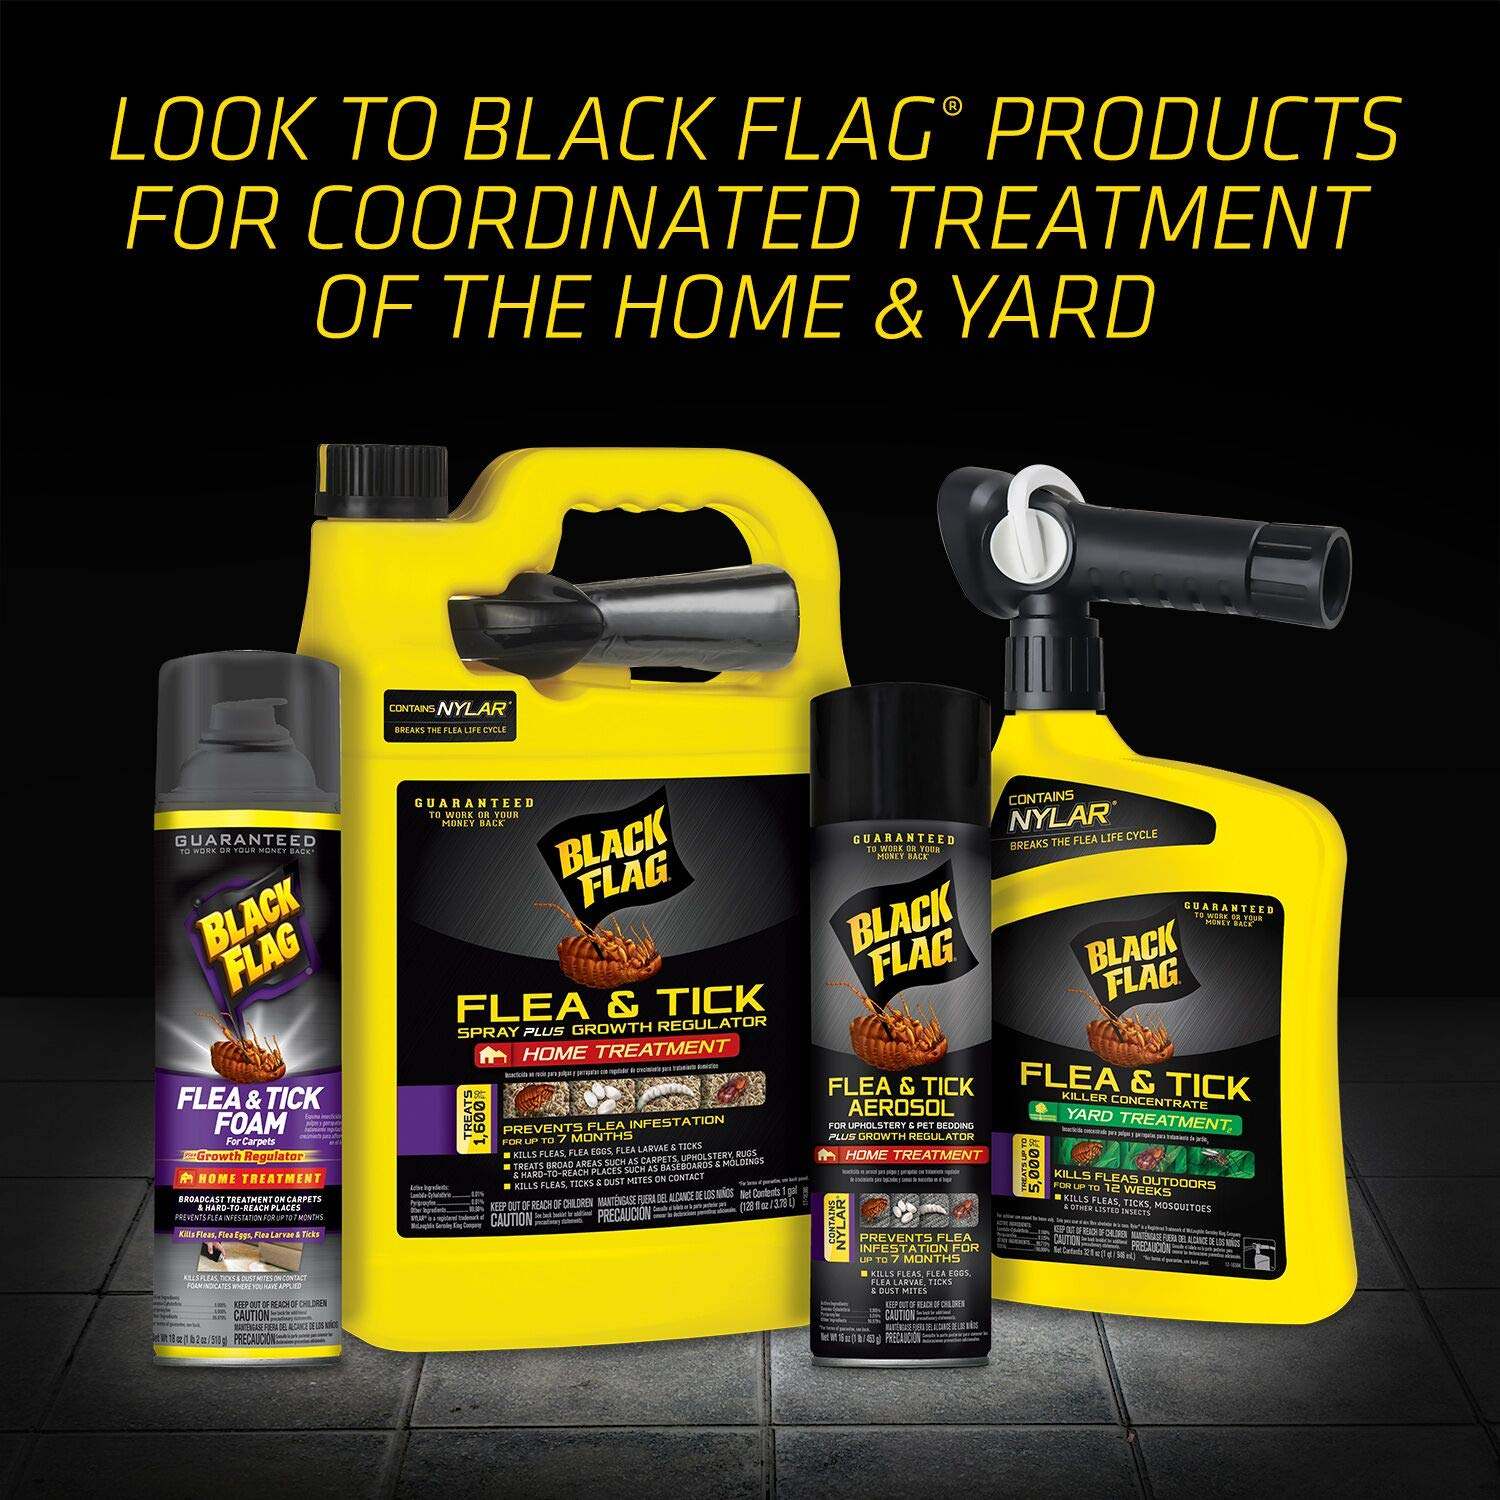 Amazon.com: Black Flag 11093 B00PVN1ST8 Extreme Flea Killer Plus Growth Regulator RTU, 1-gal, Pack of 1 BLACK: Garden & Outdoor